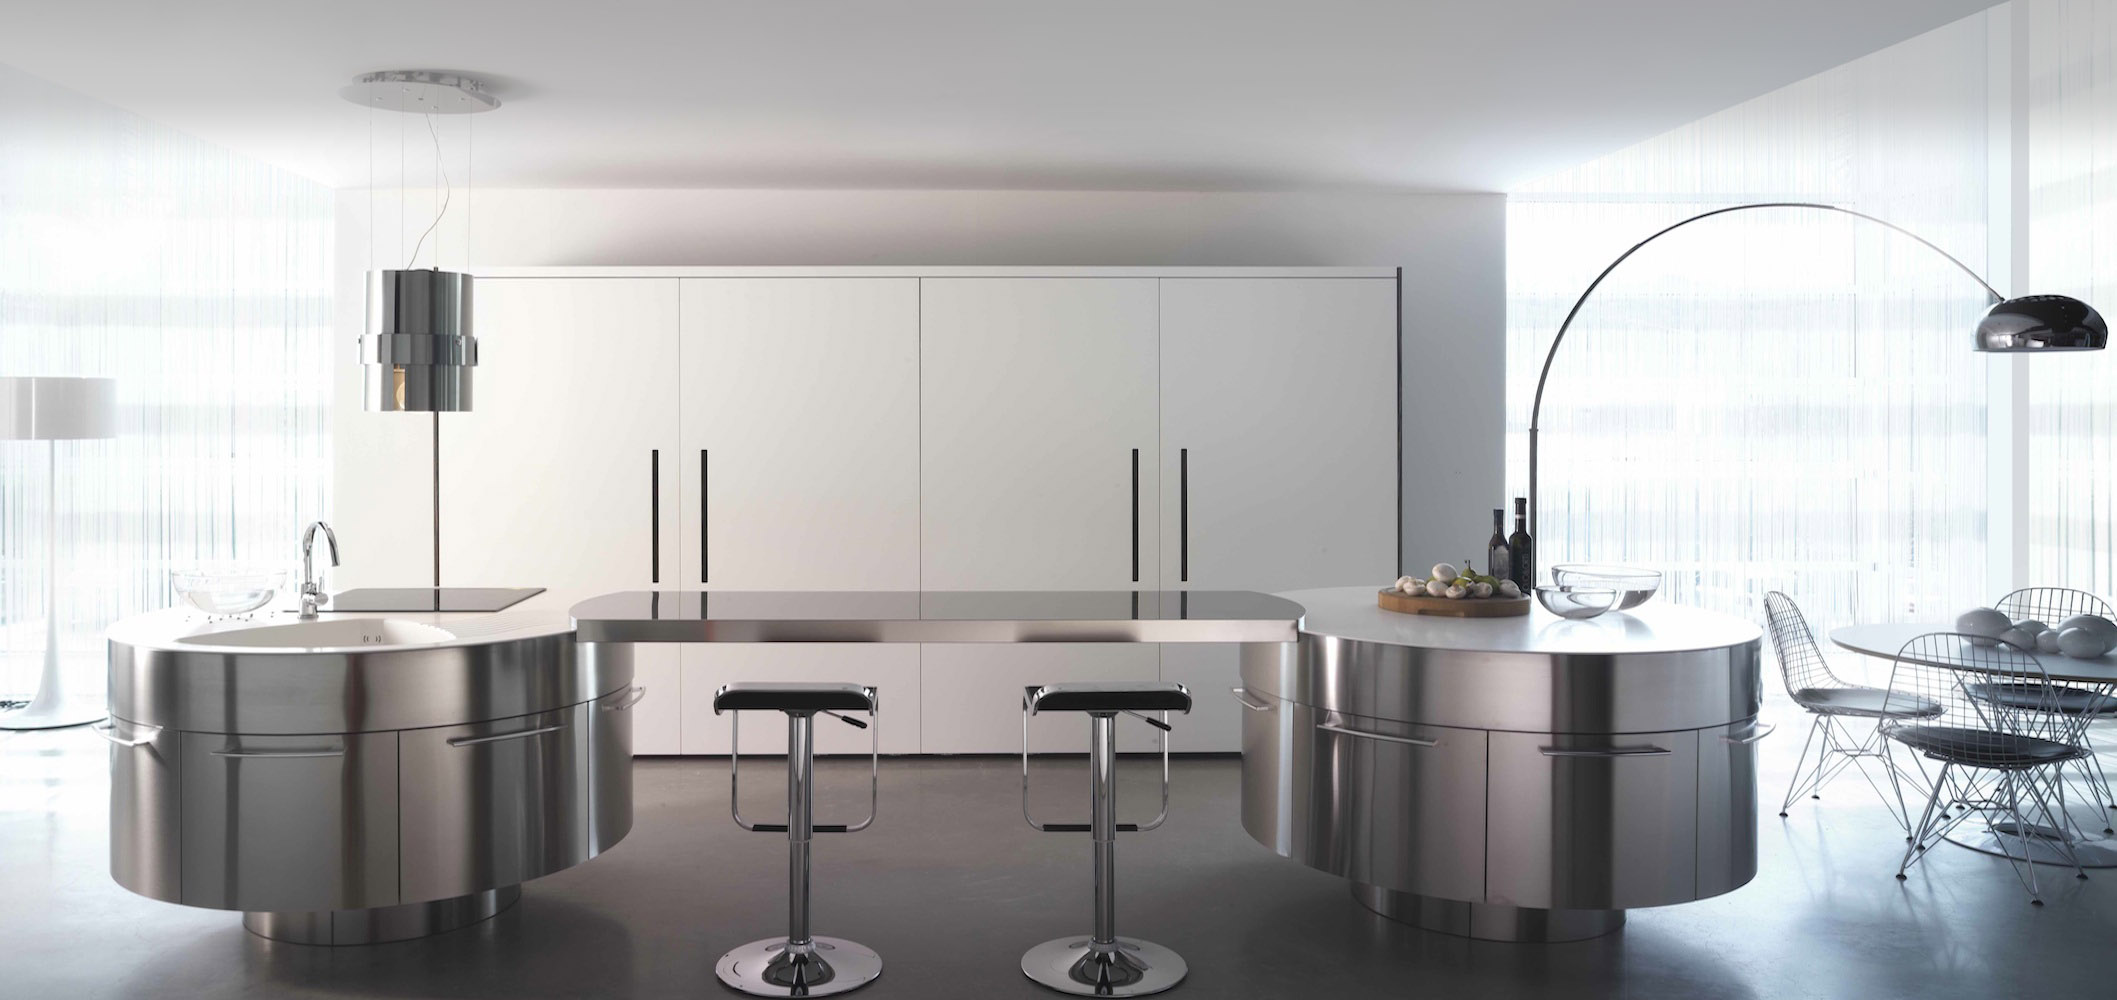 Lovely Twin Circular Metallic Islands Are Connected Via Metal Countertop Bridge In  This Modern Kitchen. Large Nice Design